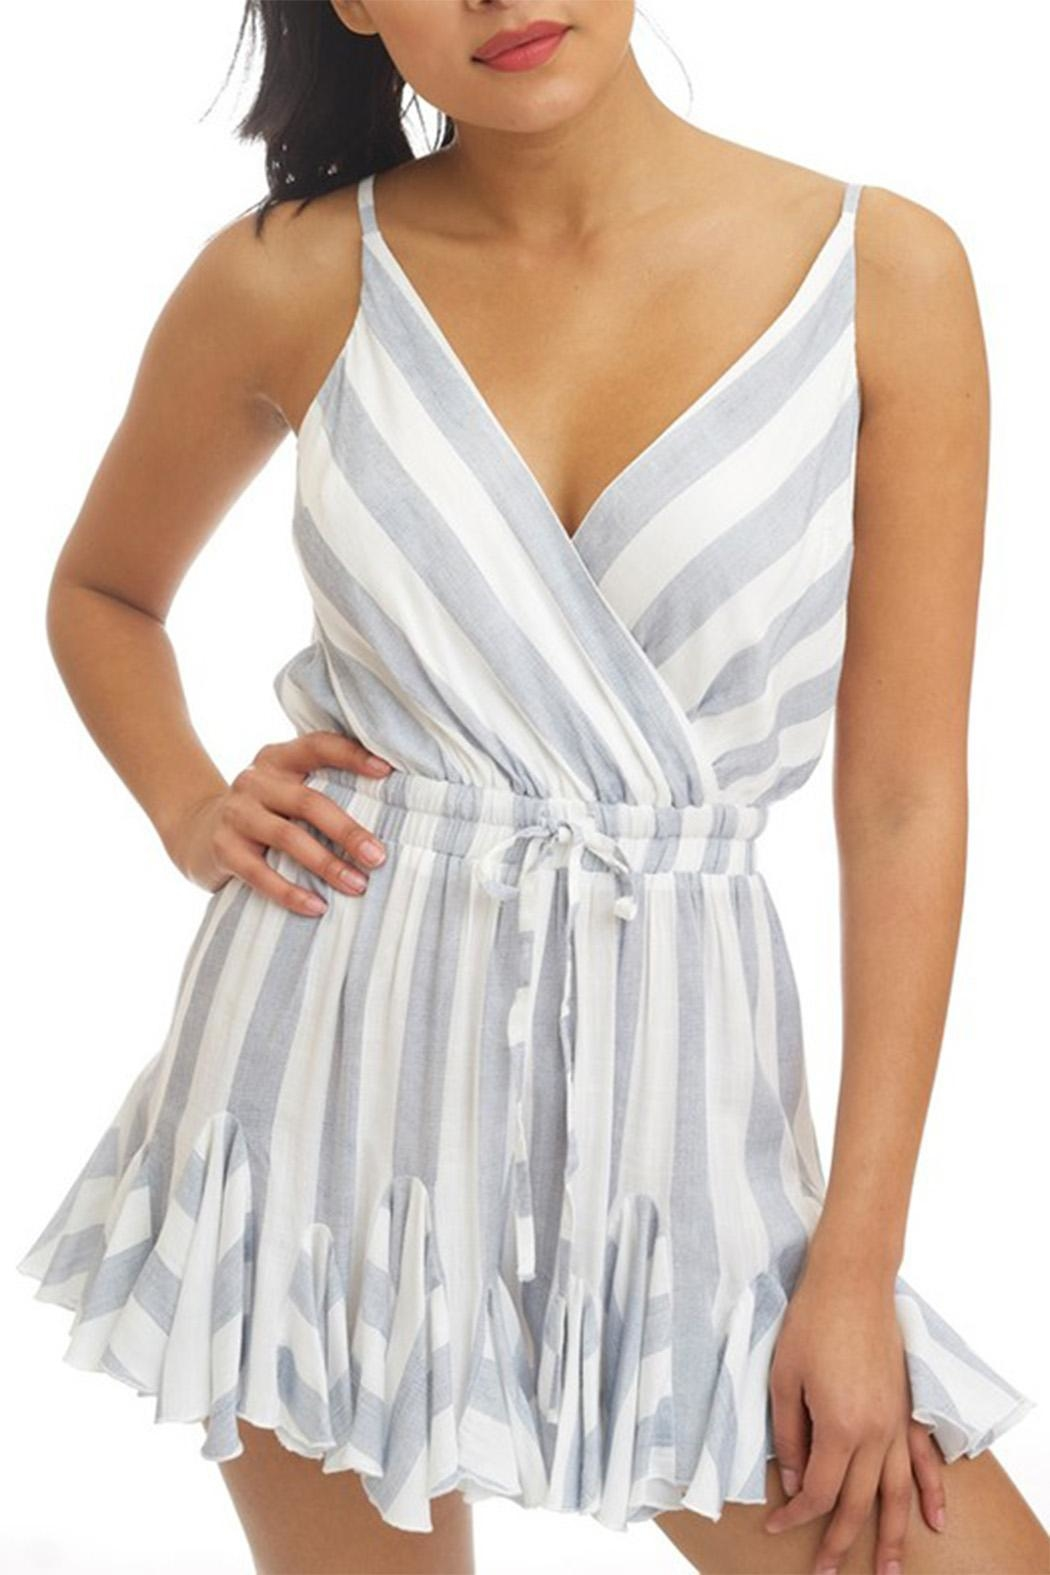 luxxel Striped Romper - Main Image